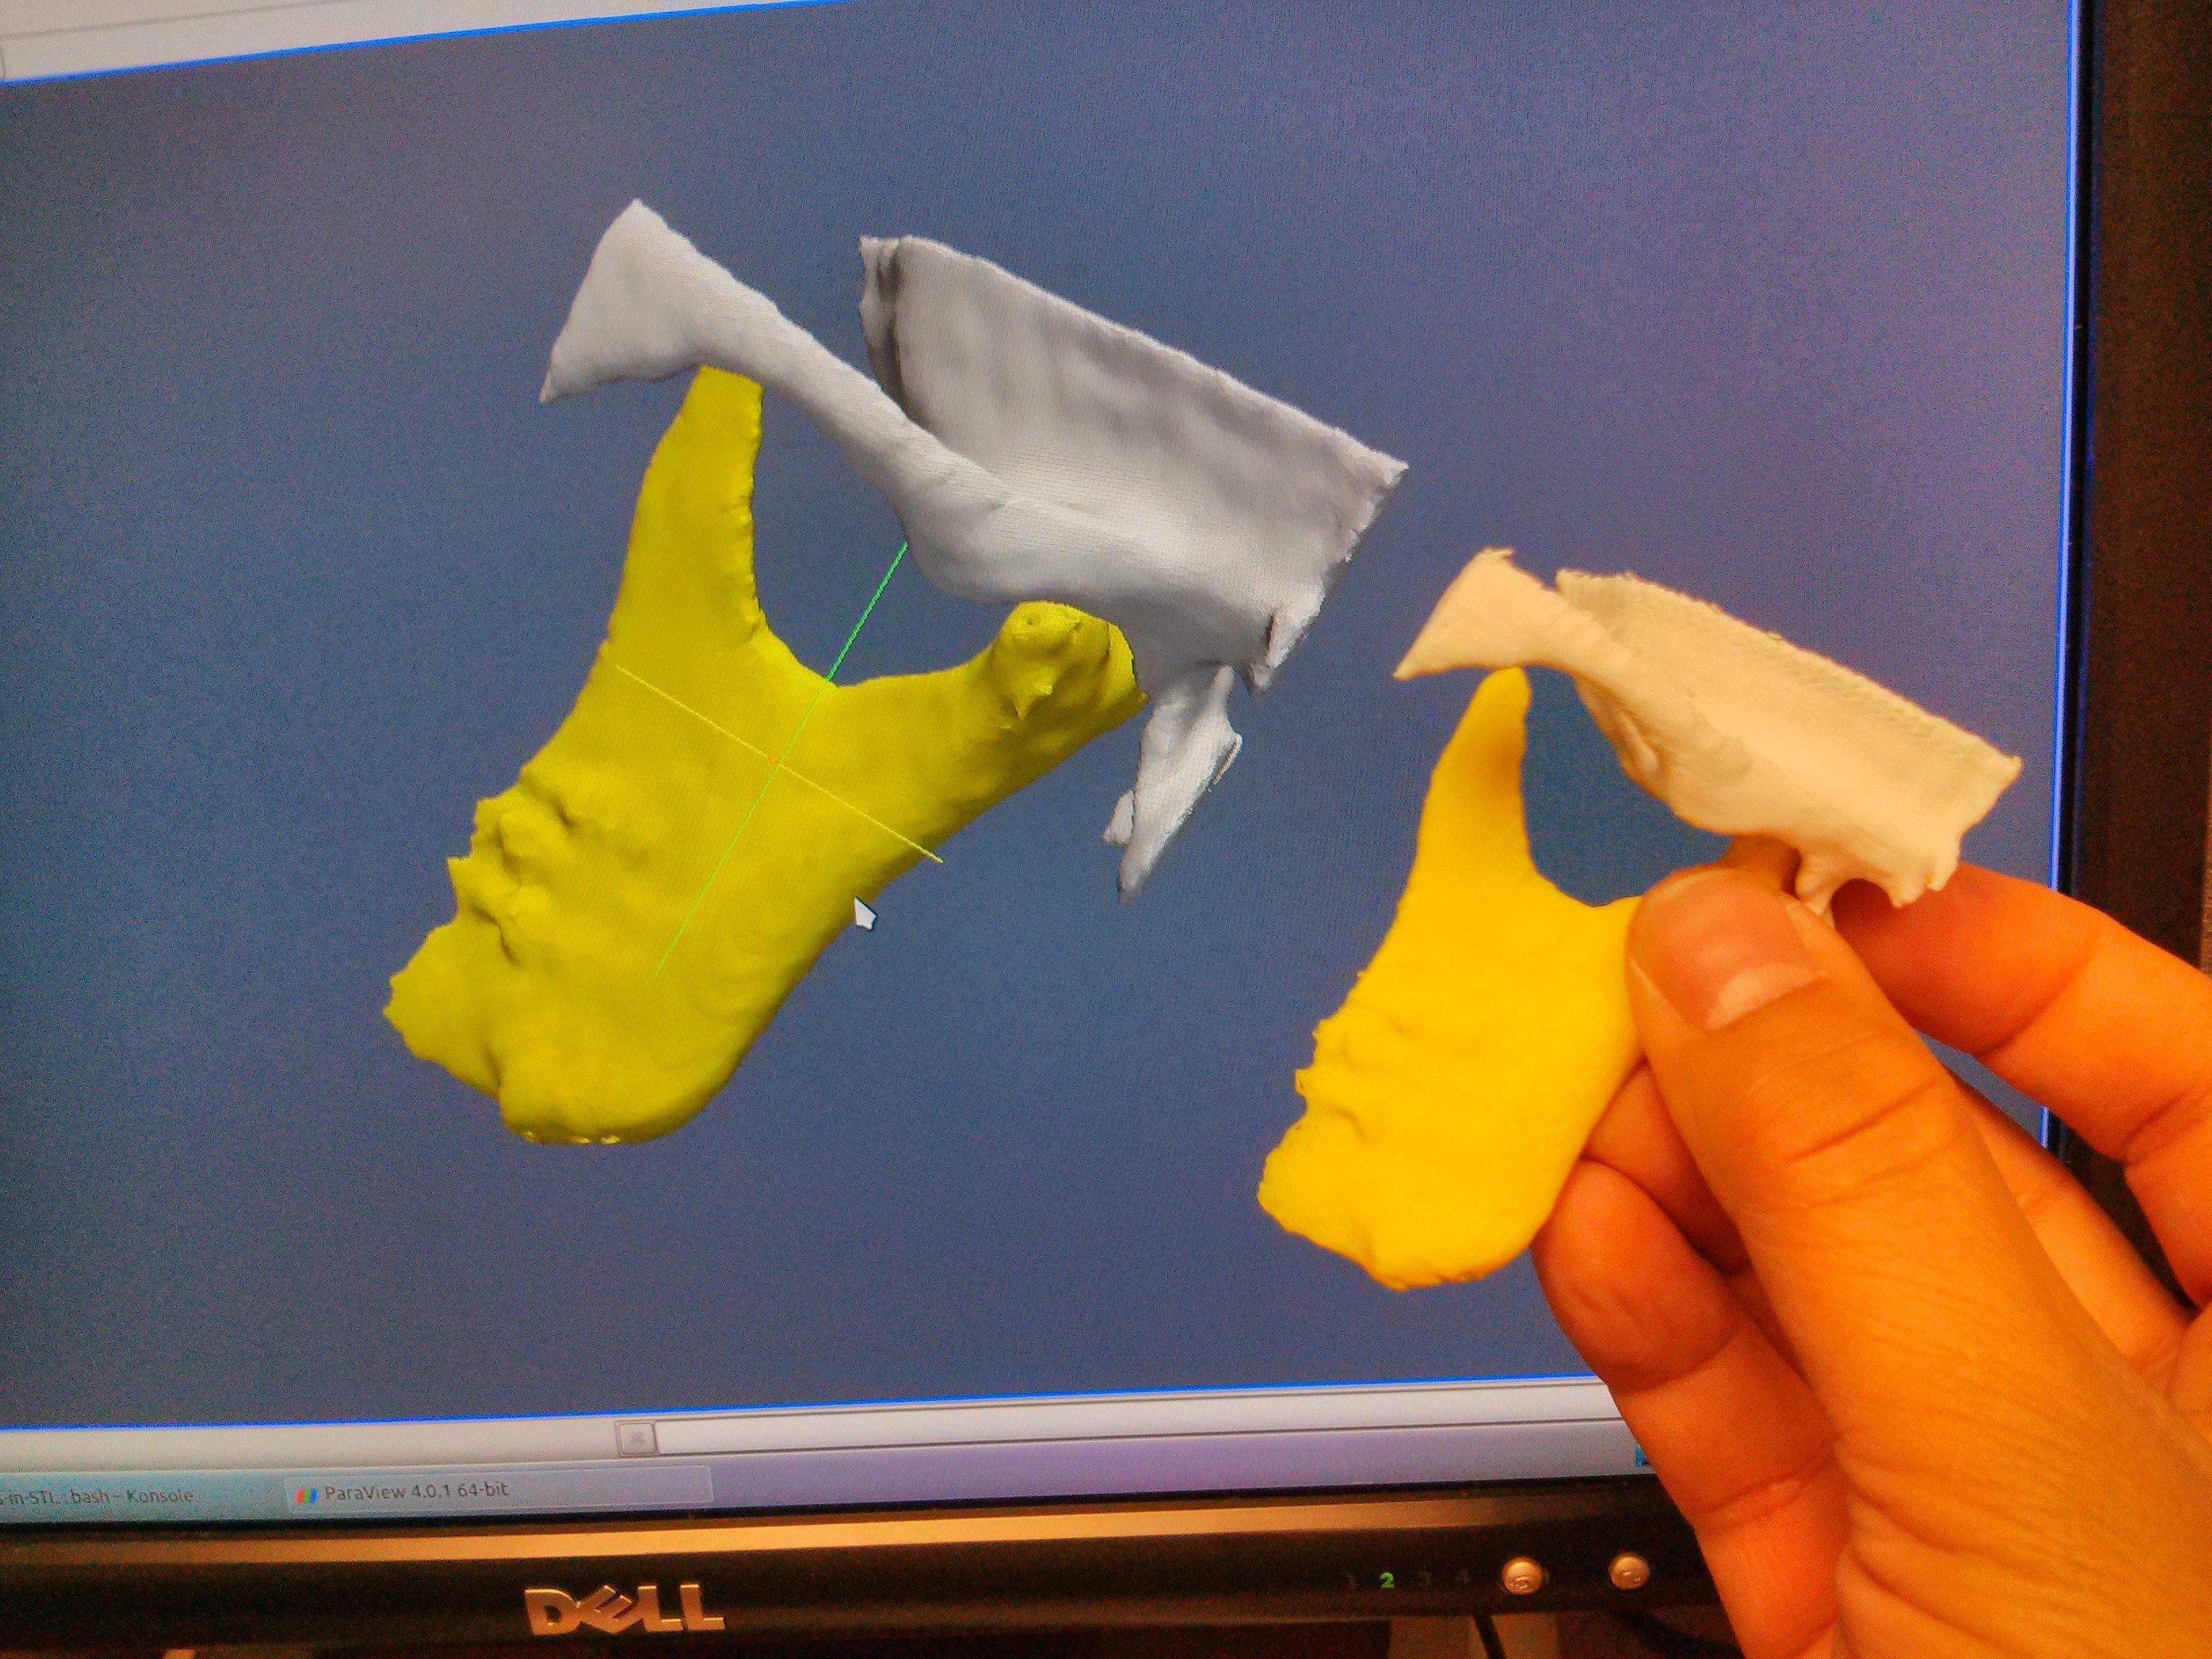 3D Printing Bone Models with Slicer and Paraview - Kitware Blog